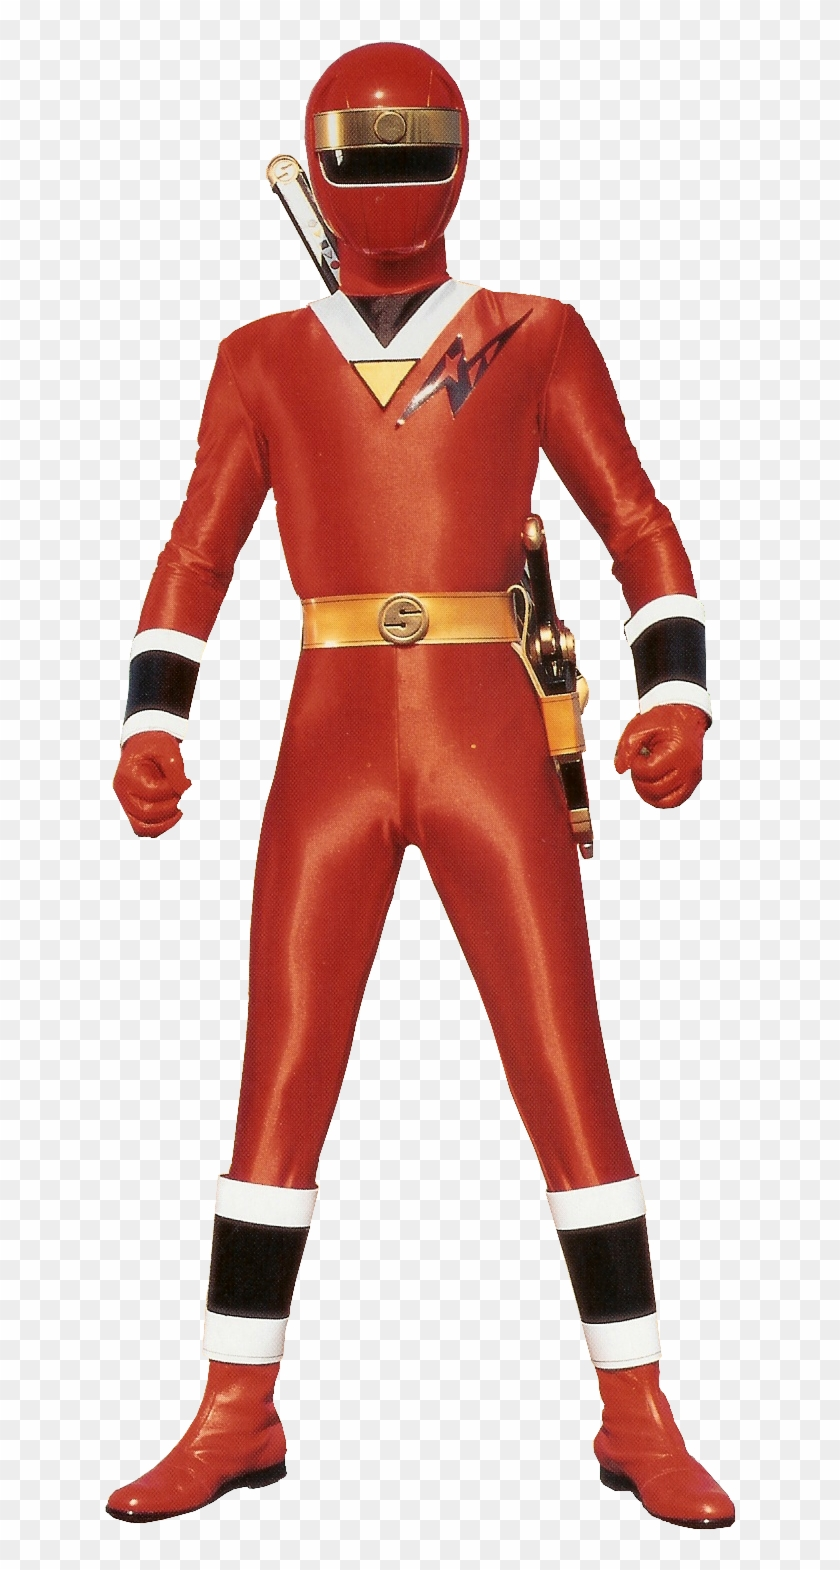 Power Rangers Wild Force : power, rangers, force, Power, Rangers, Force, Download, Clipart, (#2201), PikPng